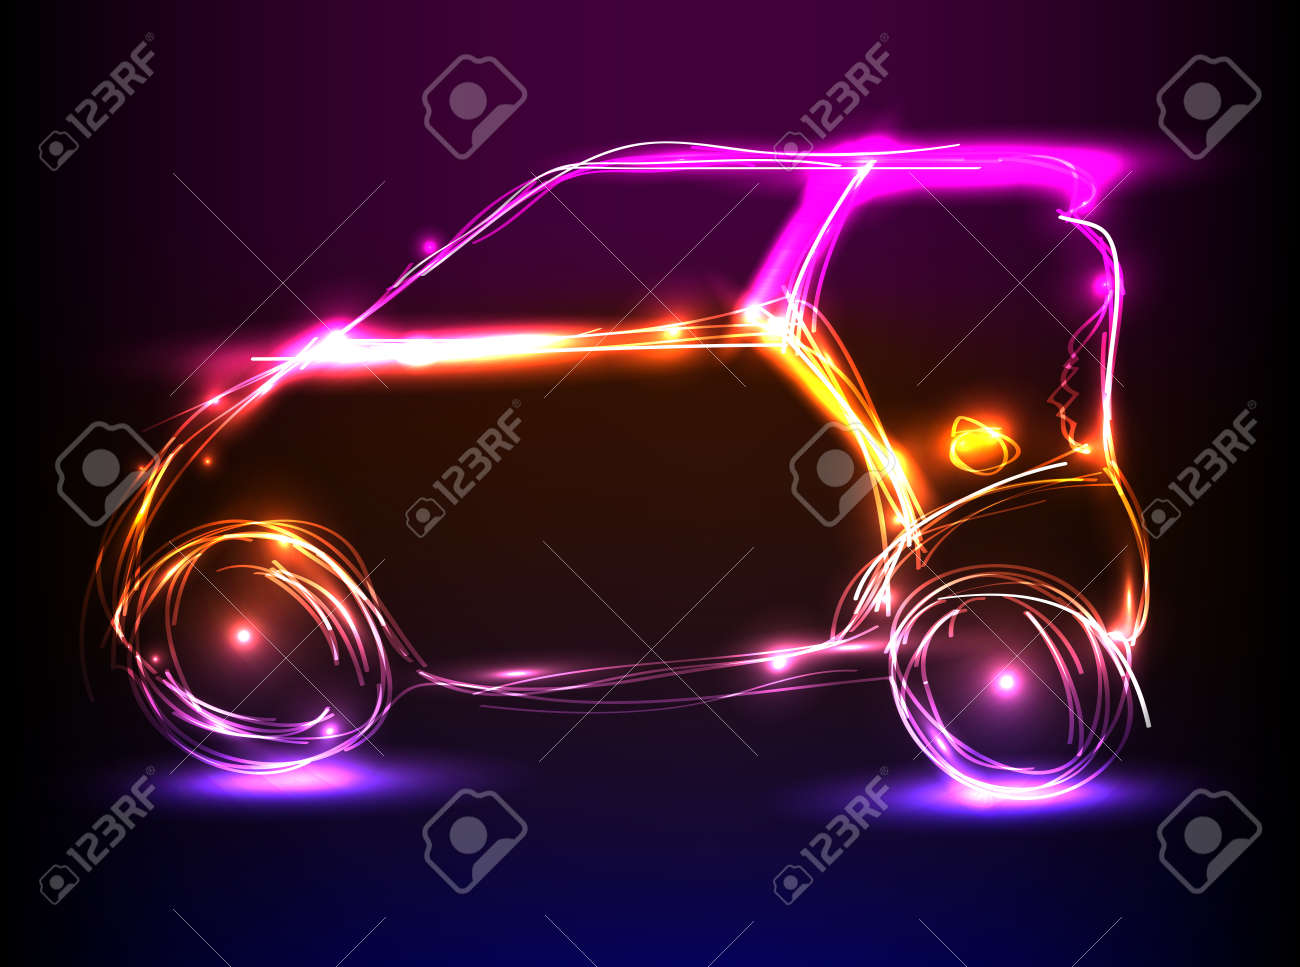 Car neon light design royalty free cliparts vectors and stock